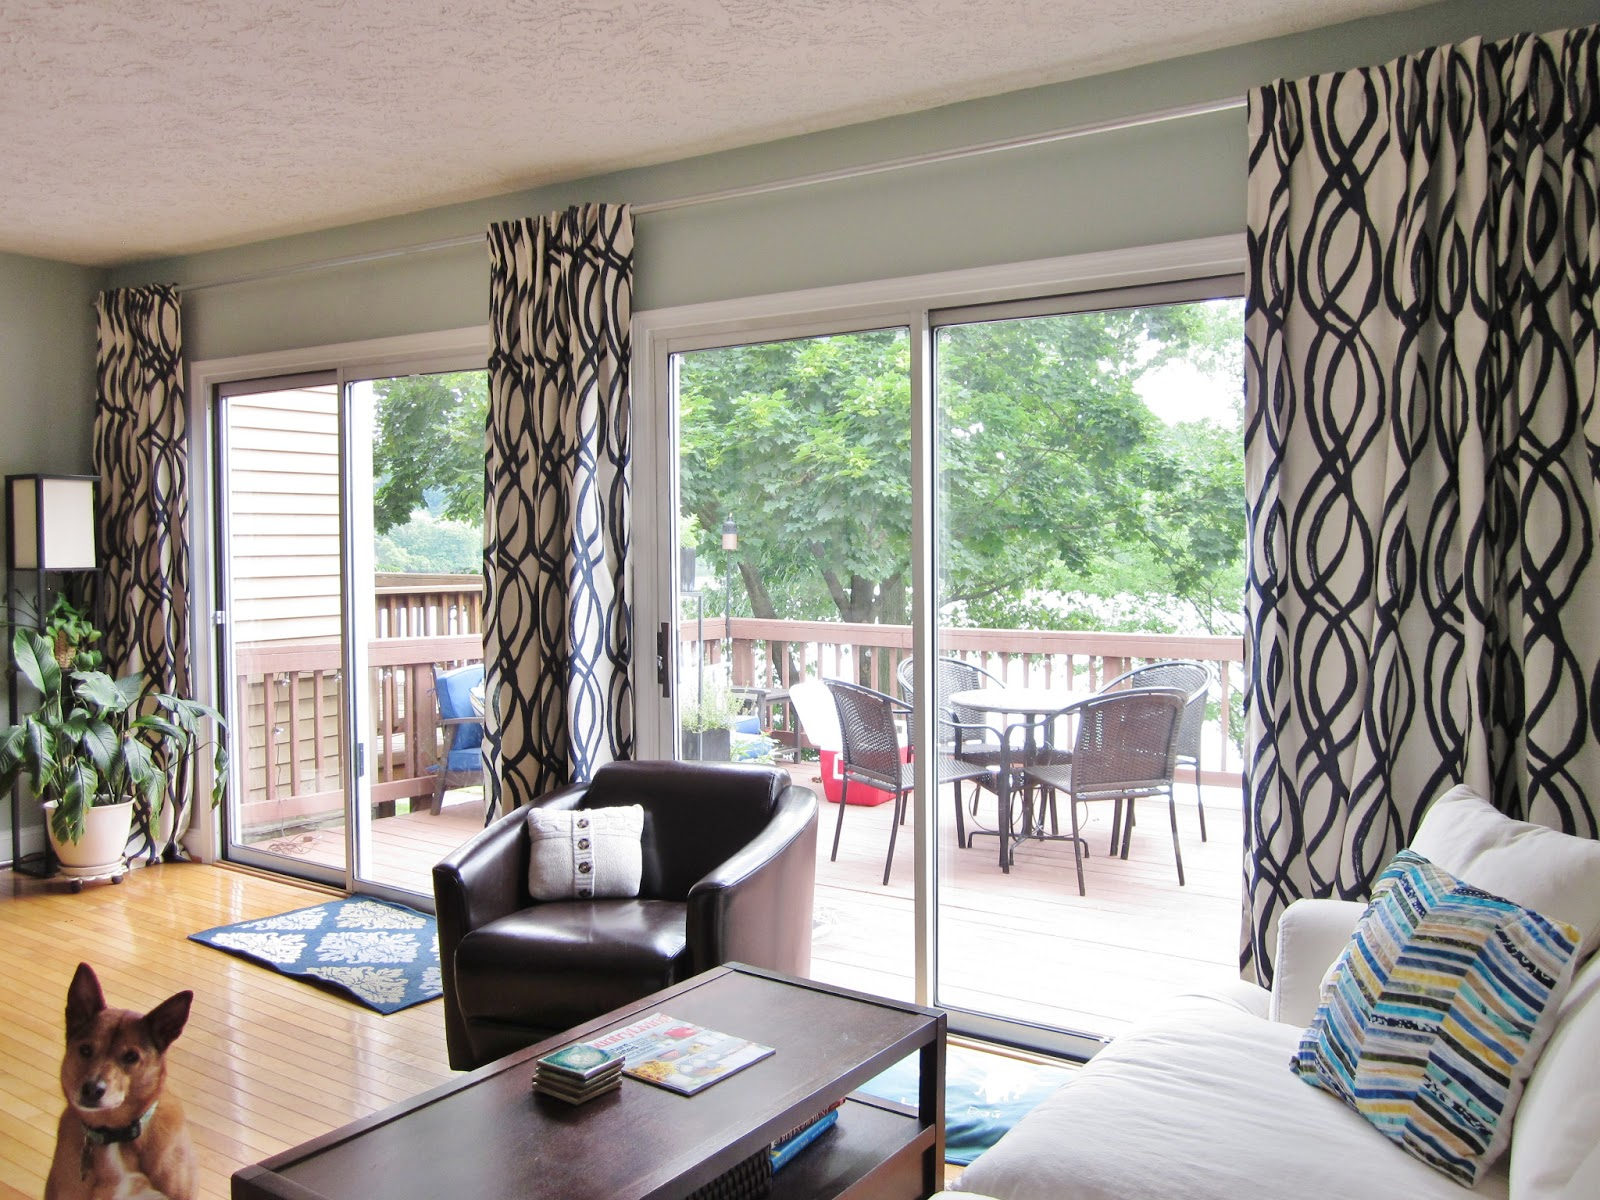 Where Can I Buy Cheap Curtains Bonnieprojects Extra Long And Cheap Curtain Rod